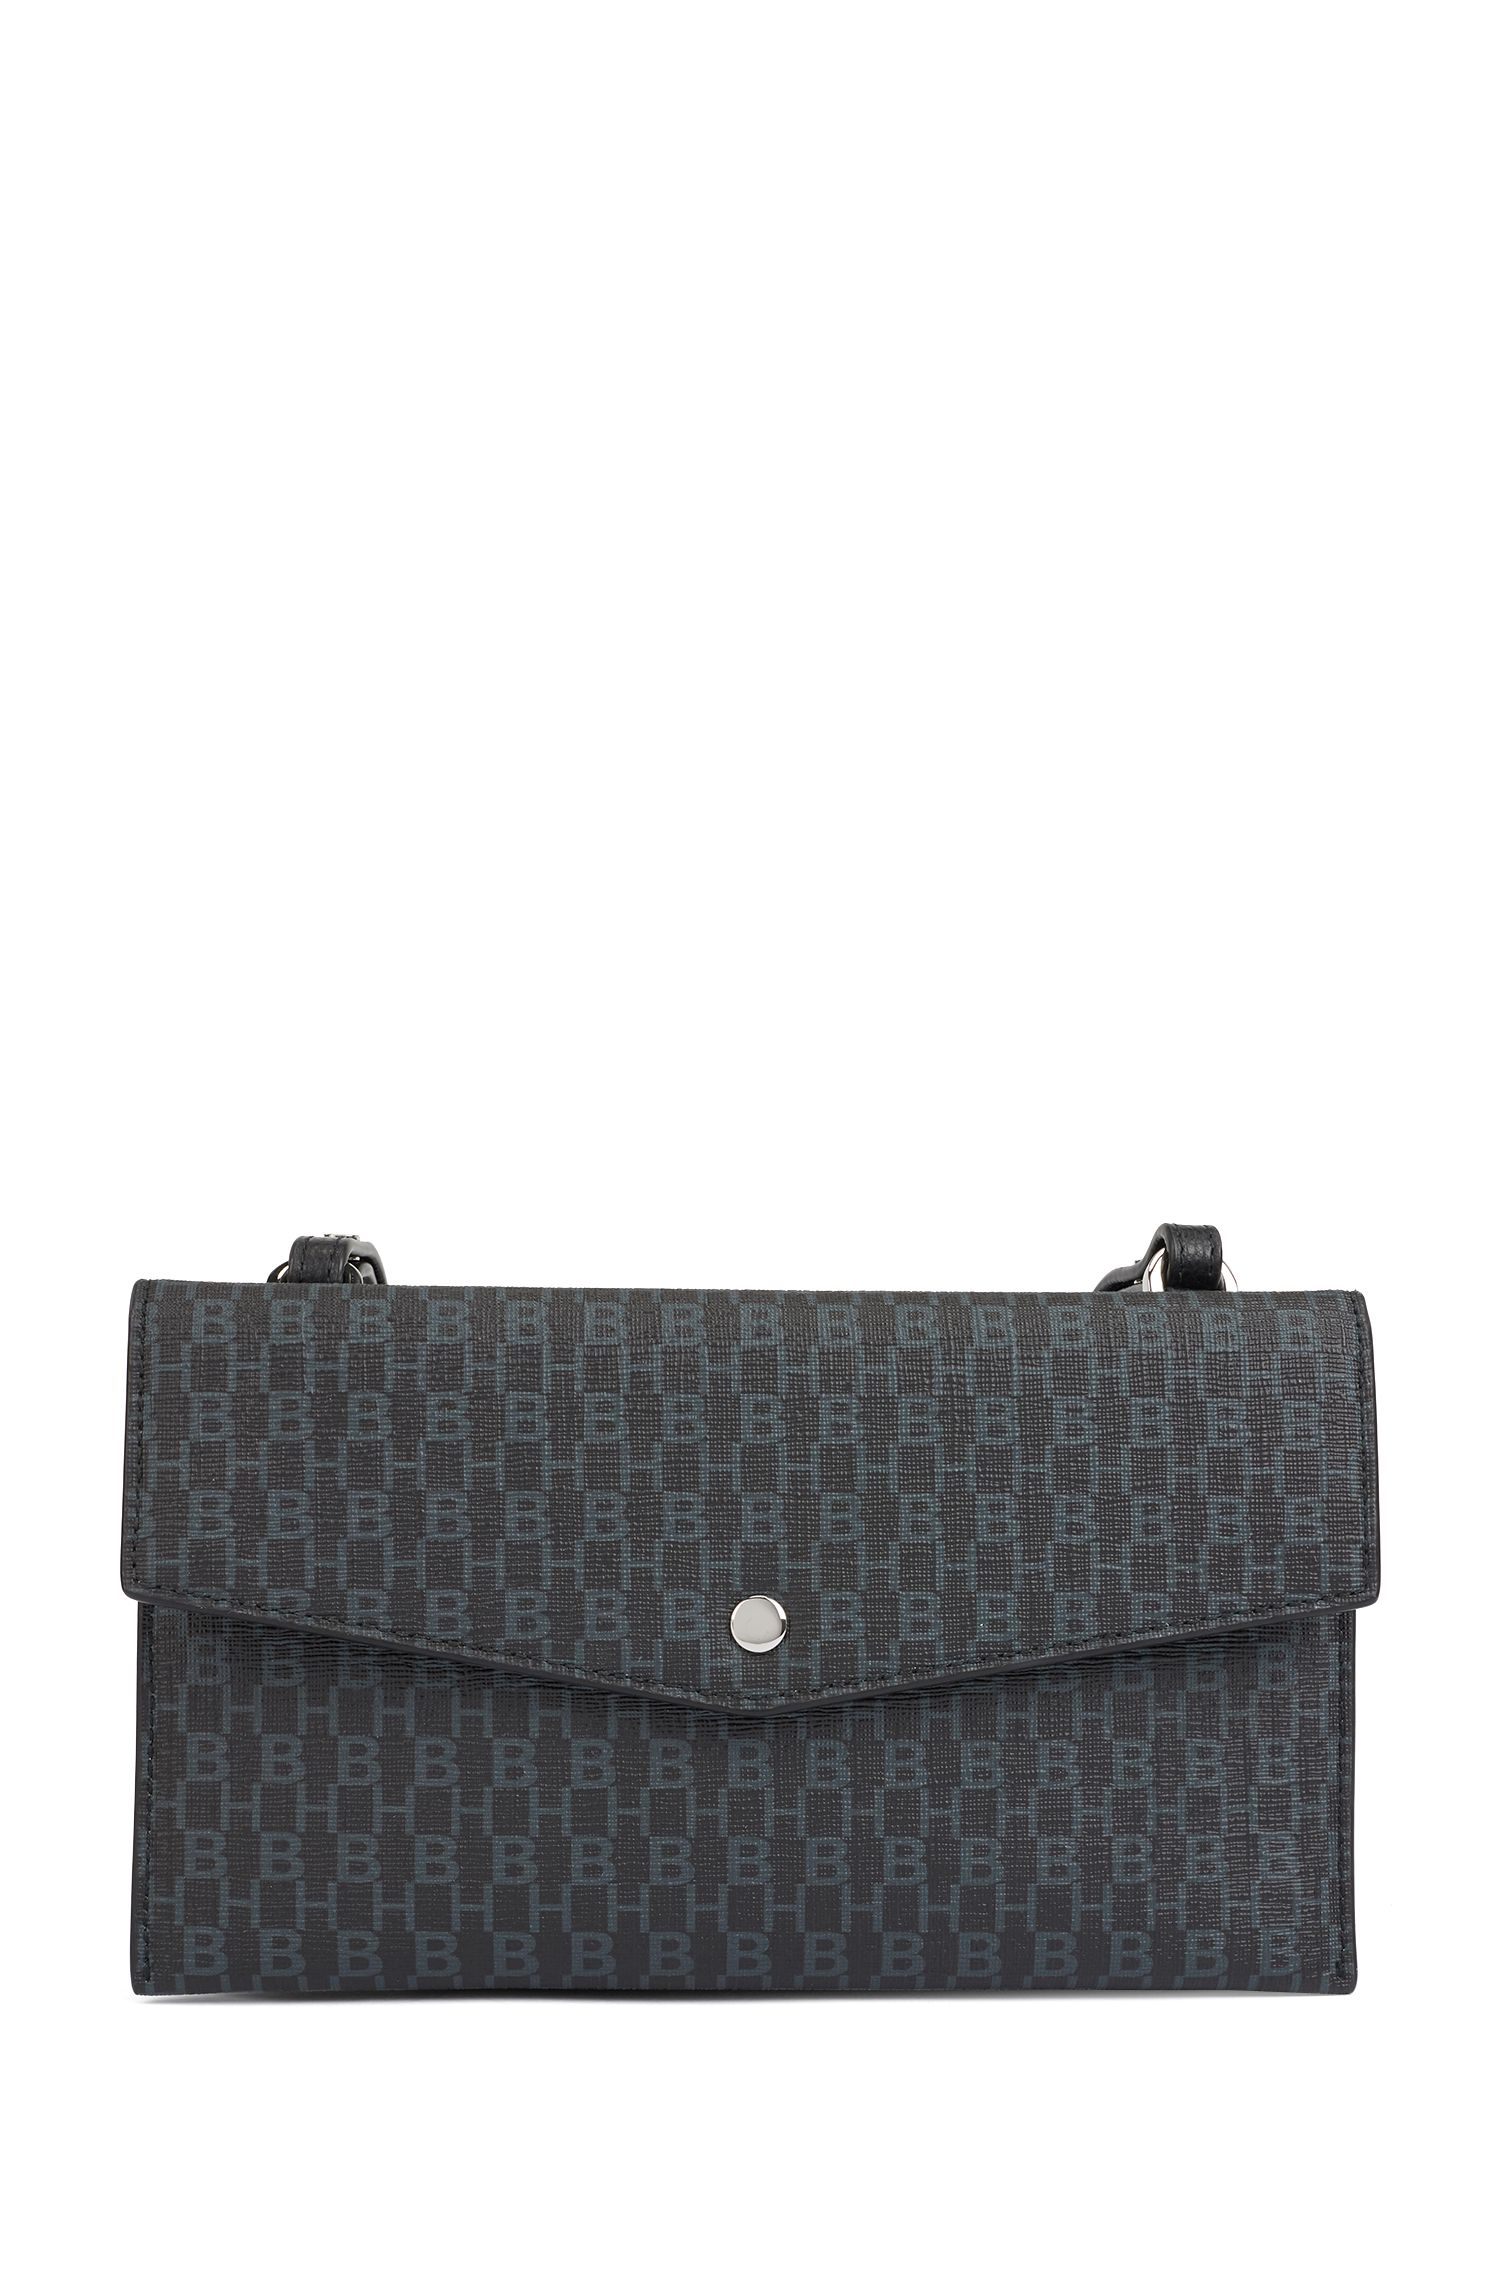 Mini bag with monogram print and leather trims, Black